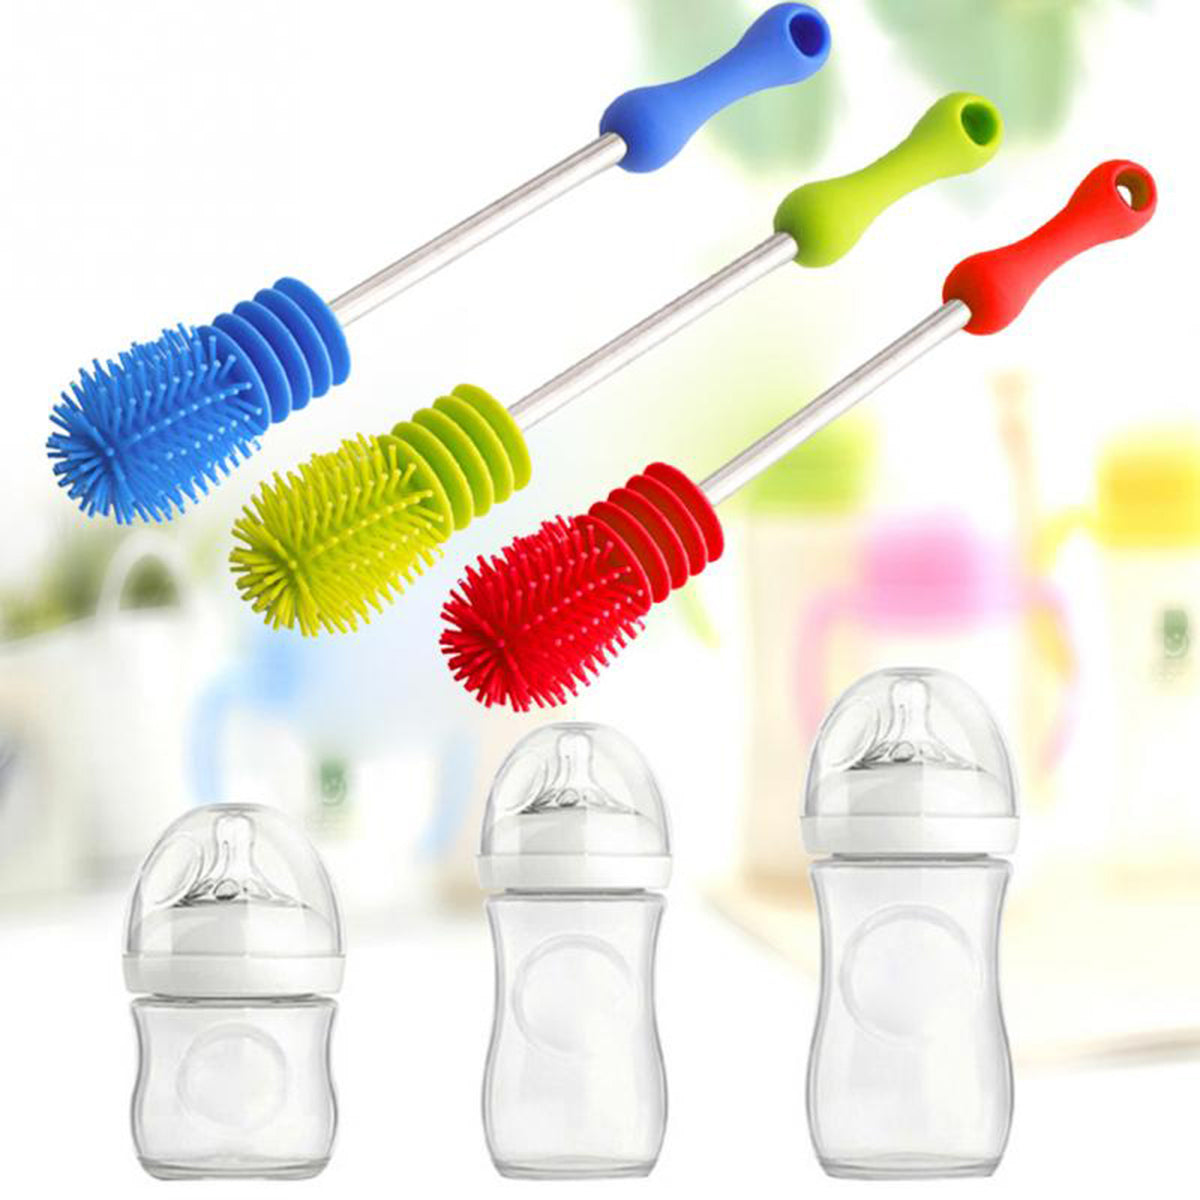 Silicone Baby Bottle Brush With Creative Design